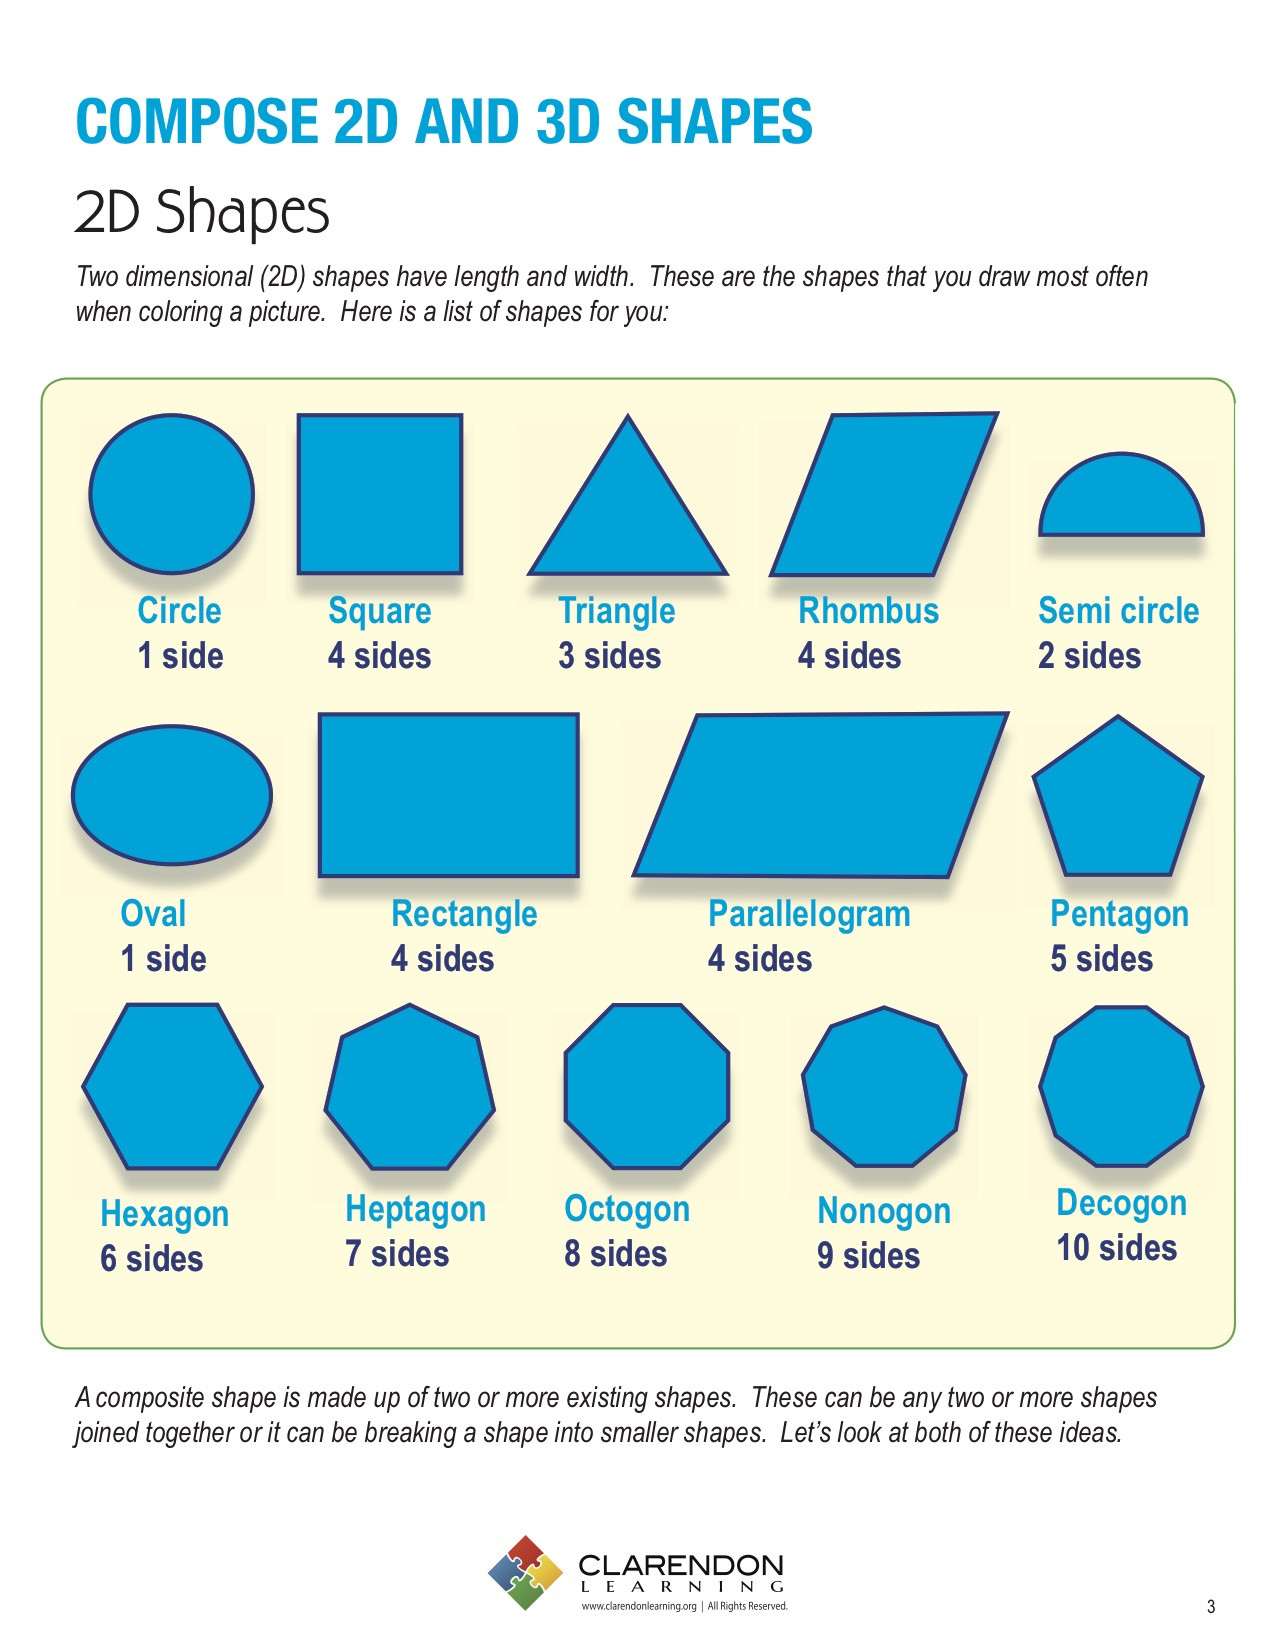 2 Dimensional Shapes Worksheet Pose 2d and 3d Shapes